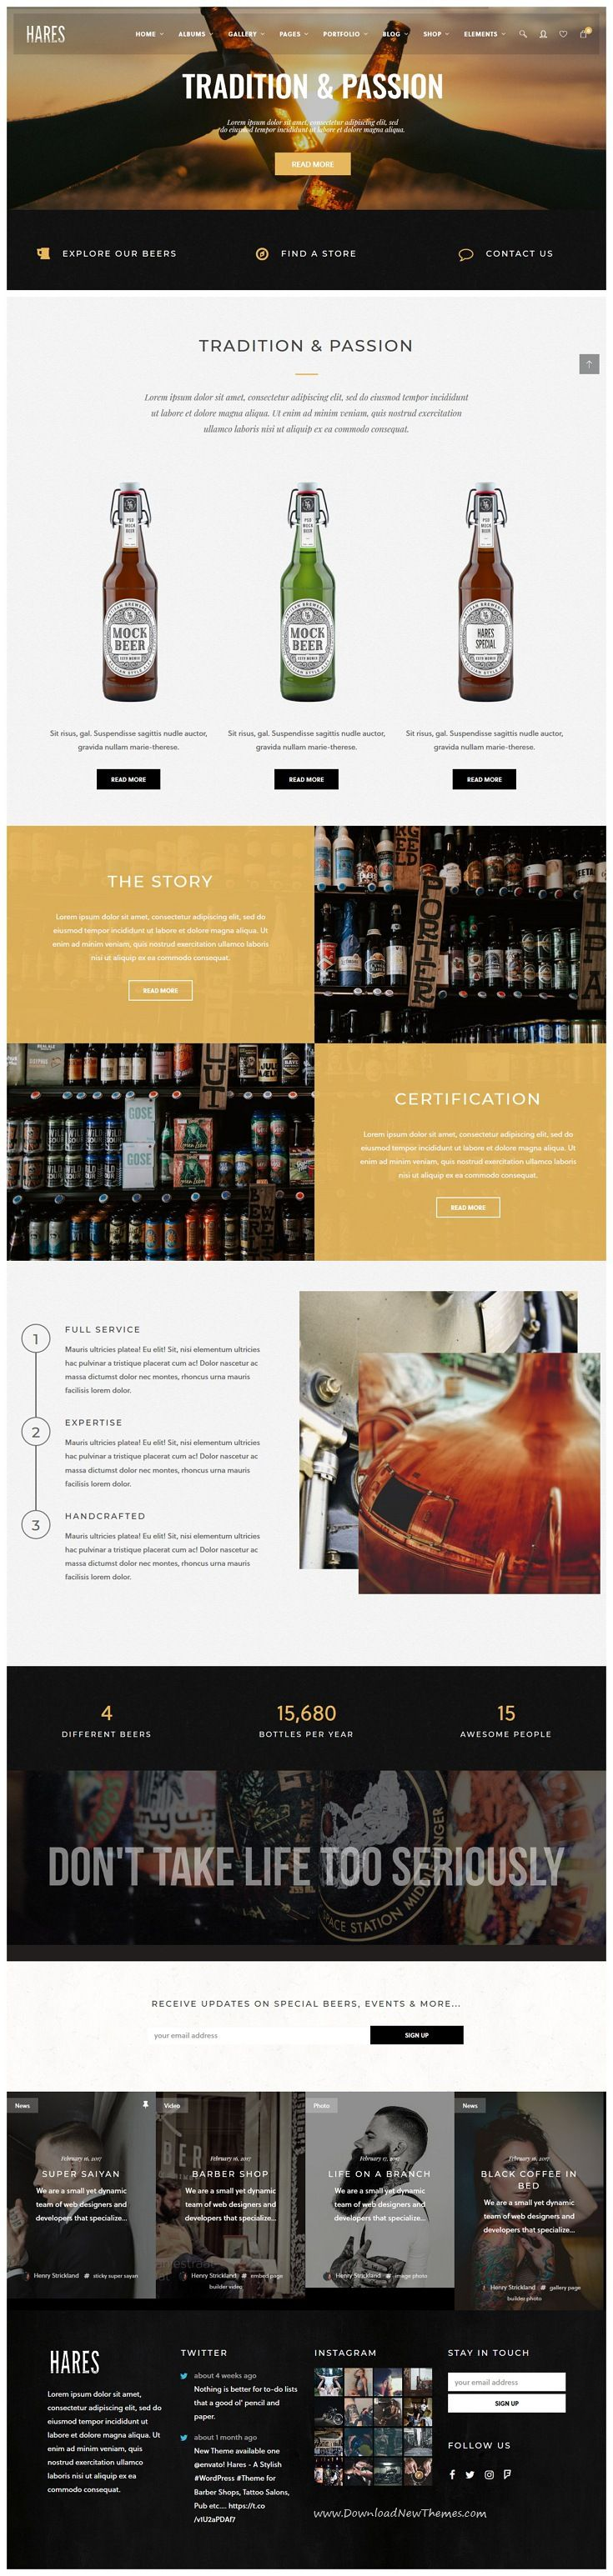 Hares is clean, stylish and modern design responsive WordPress theme for stunning #brewery and #Liquor shop #eCommerce website with 15 niche homepage layouts to live preview & download click on Visit